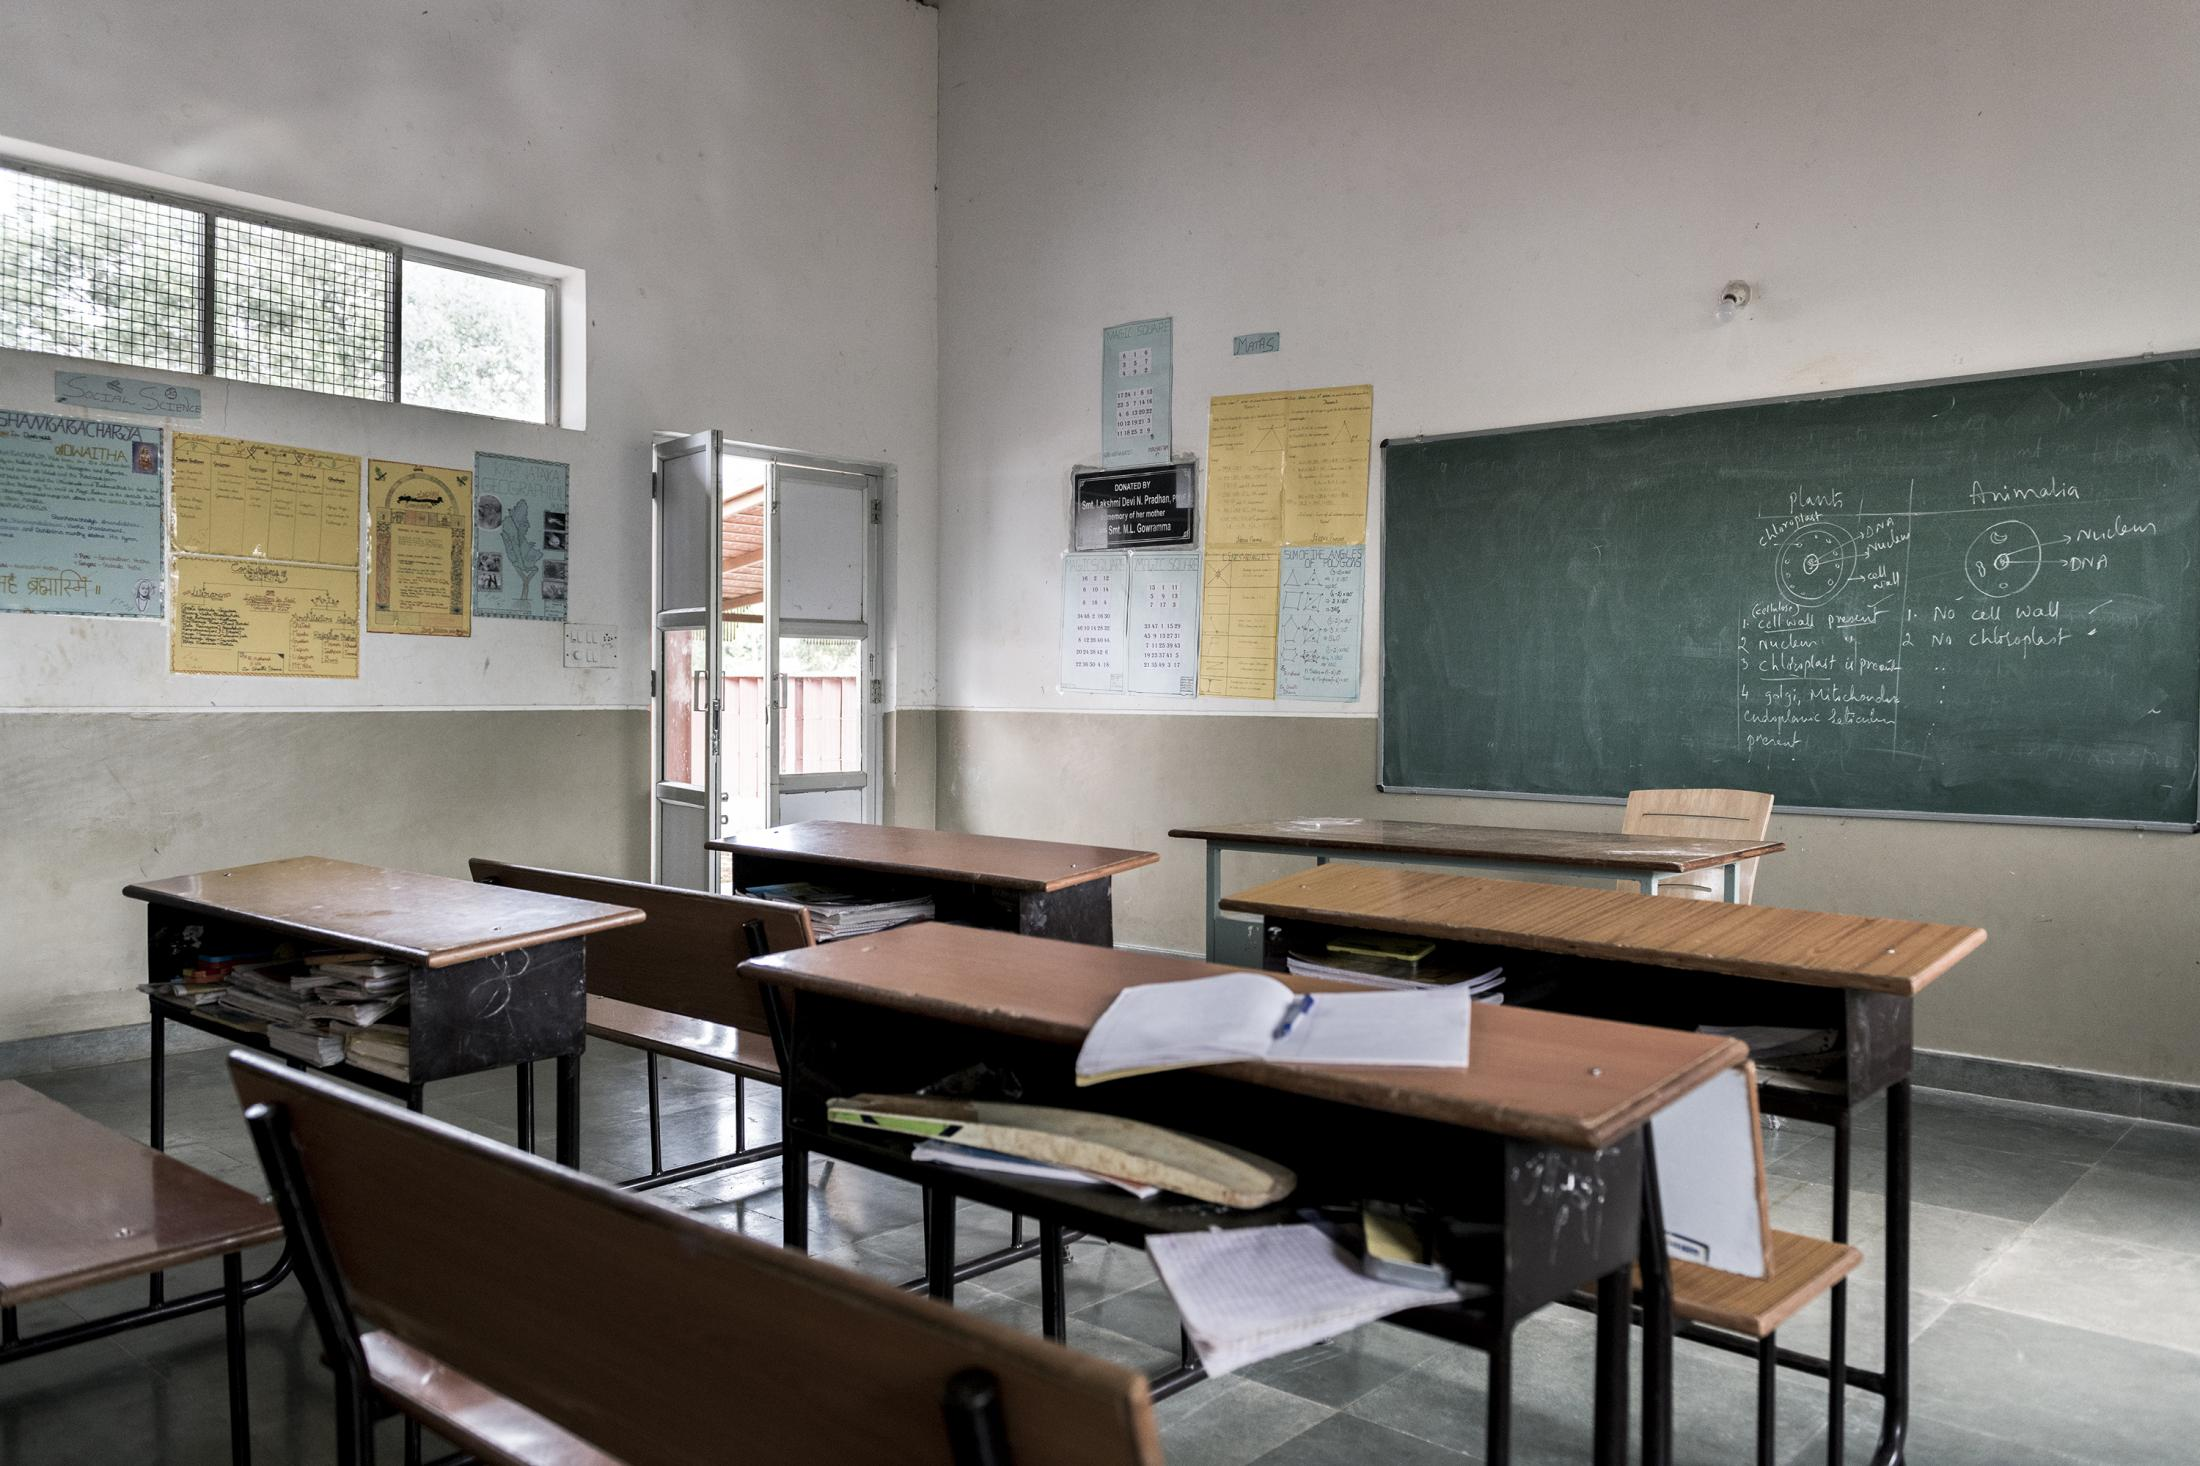 Classrooms are mainly used only when the blackboard is essential for teachers to explain some subjects. India.